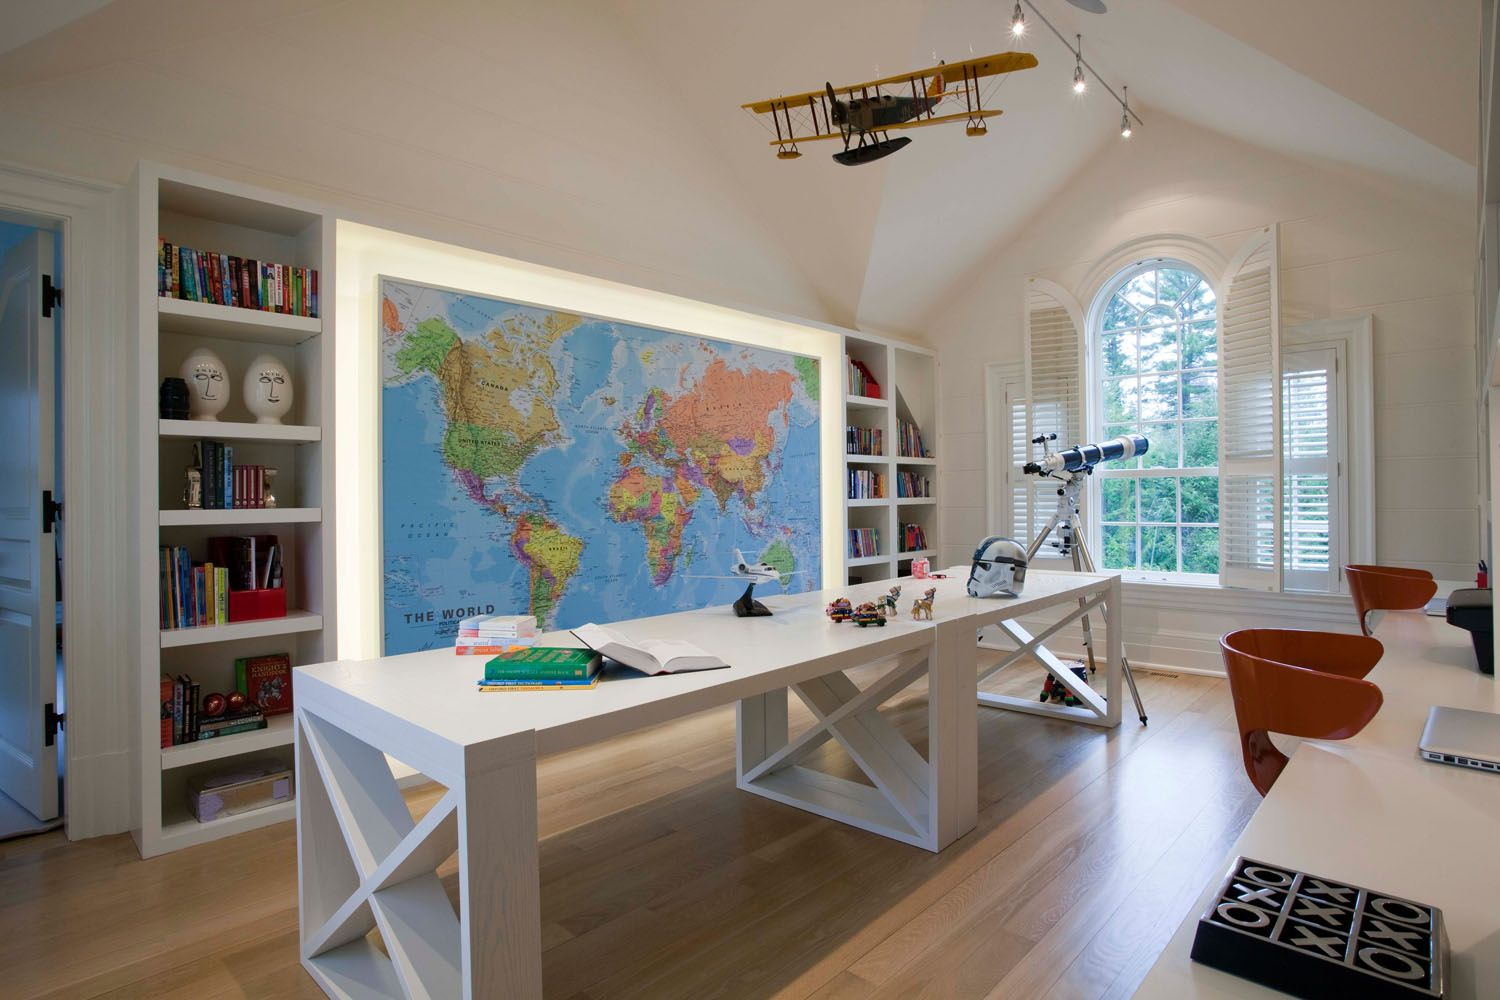 Love The Bookshelves And The Big Map In This Room.. Getting A Few Ideas For  The Girls Study/Sewing Room.